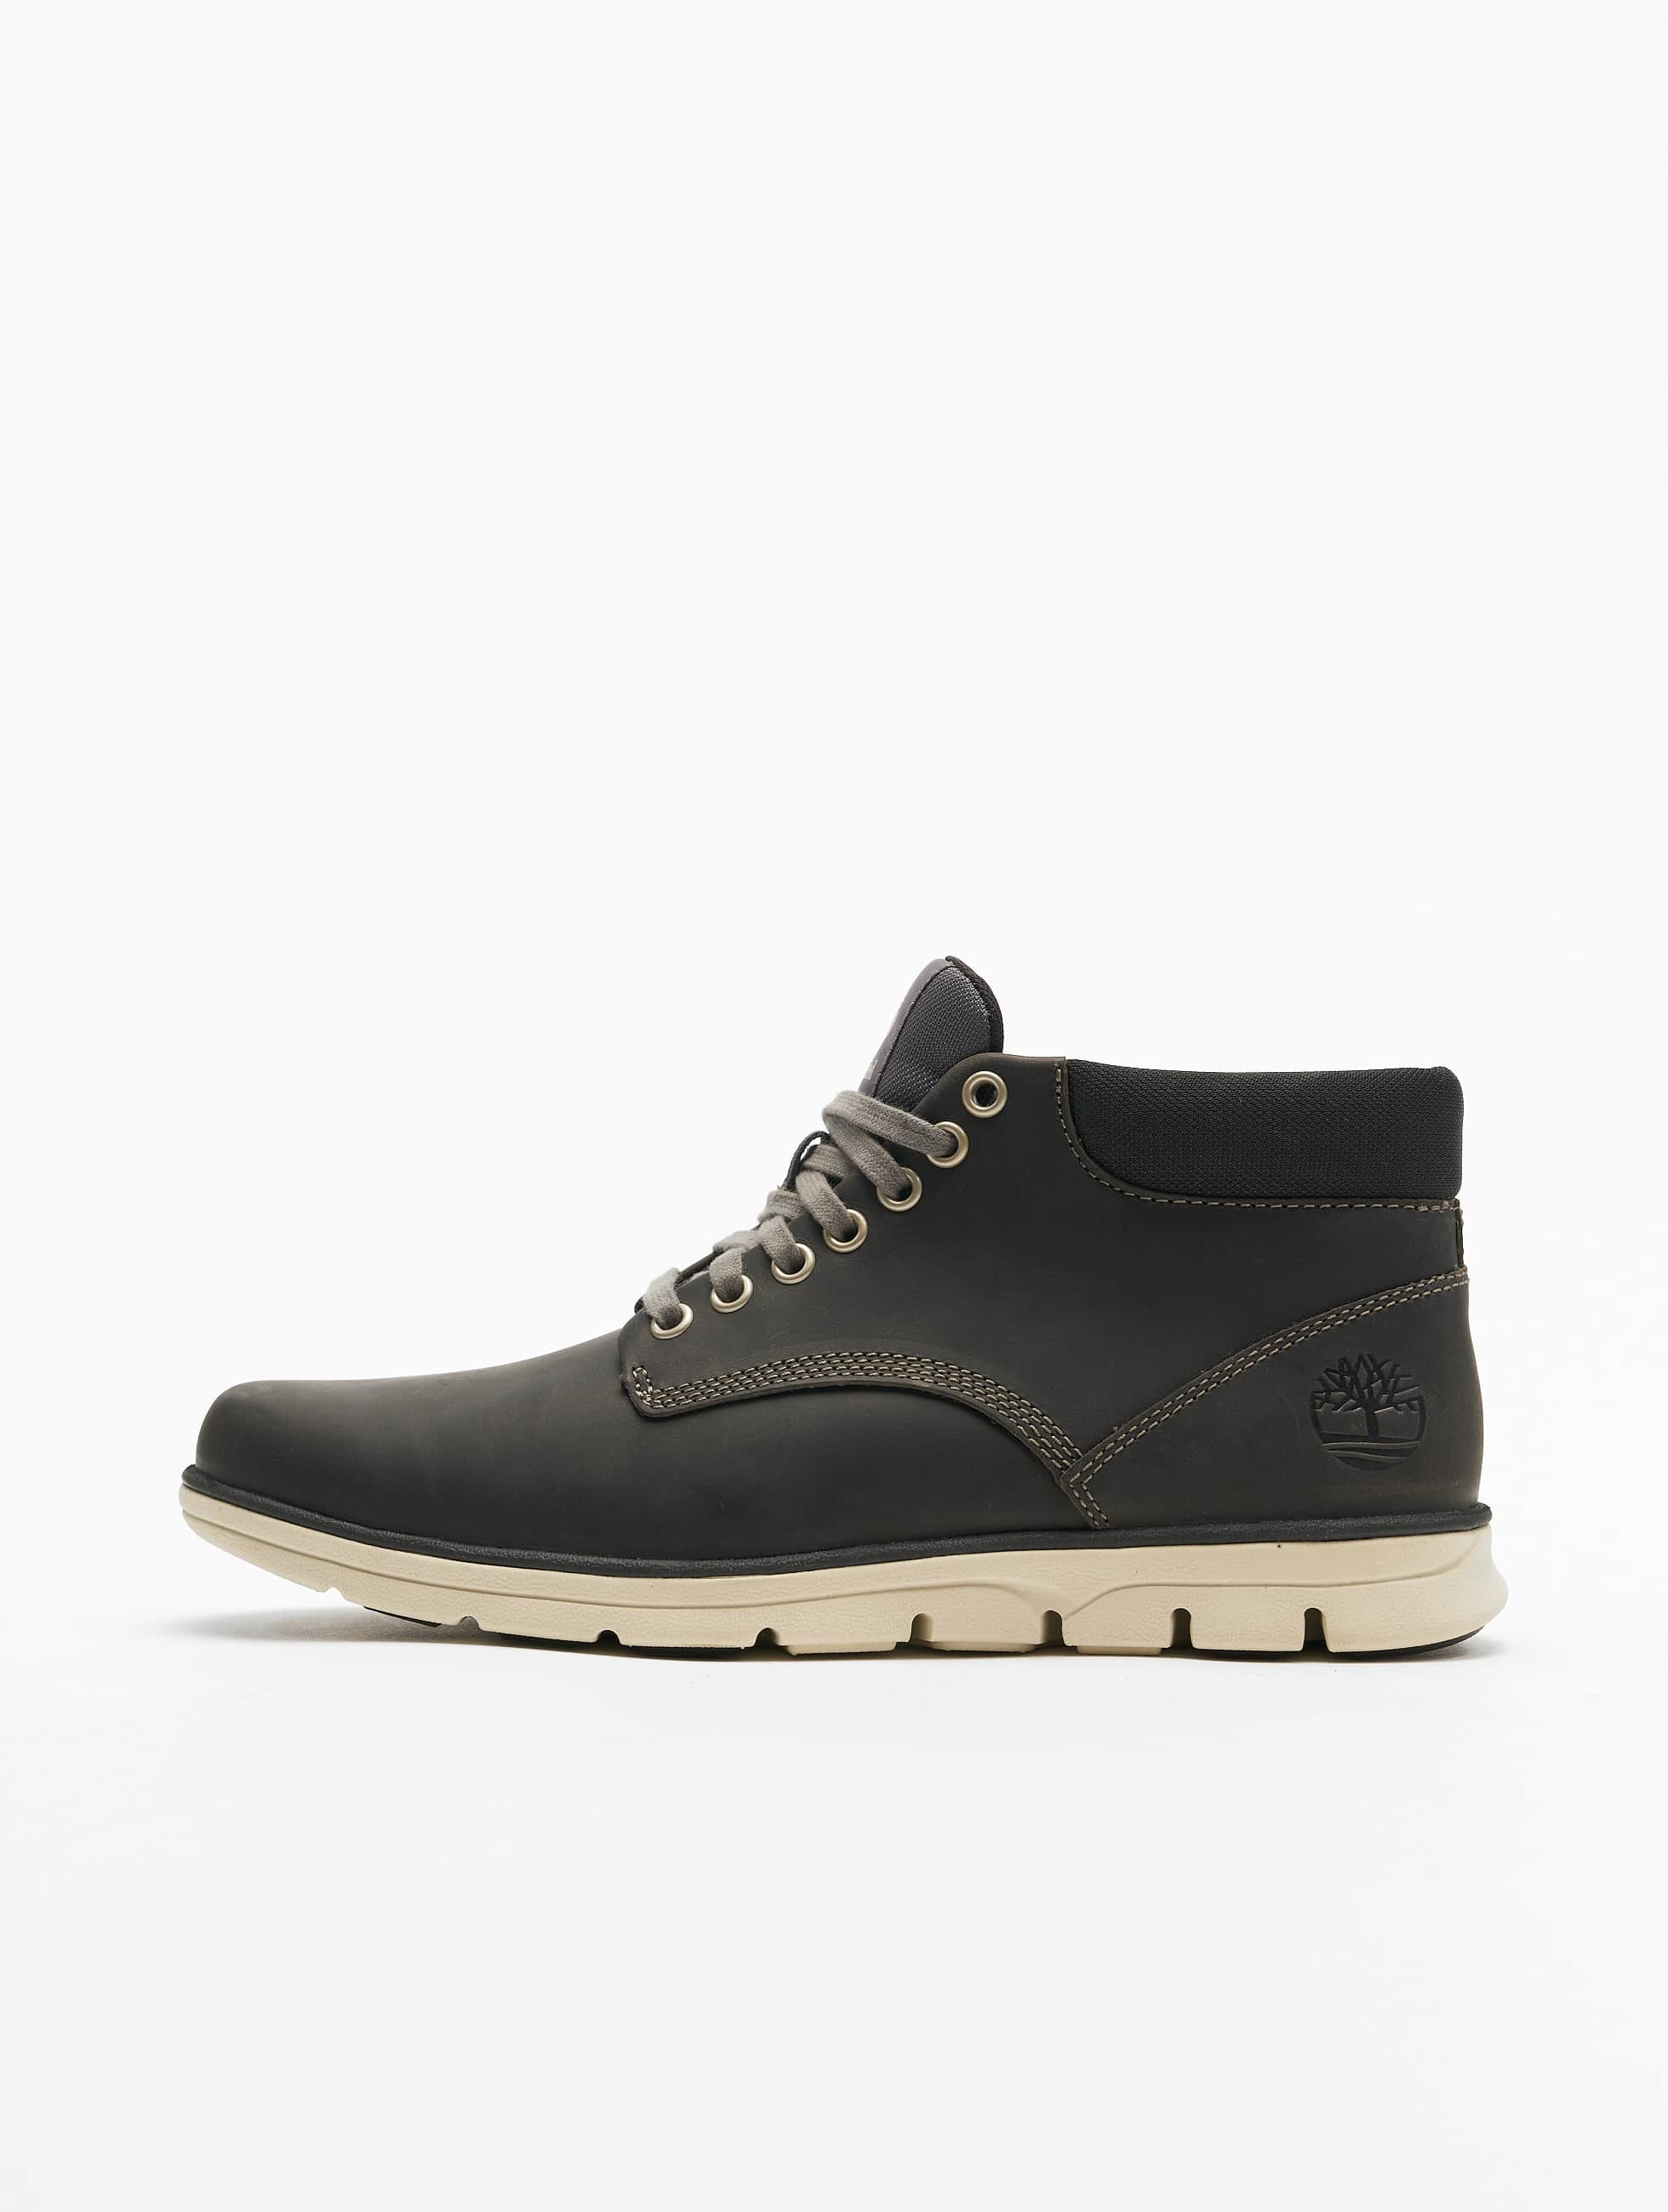 Timberland Sneakers Bradstreet Chukka Leather szary